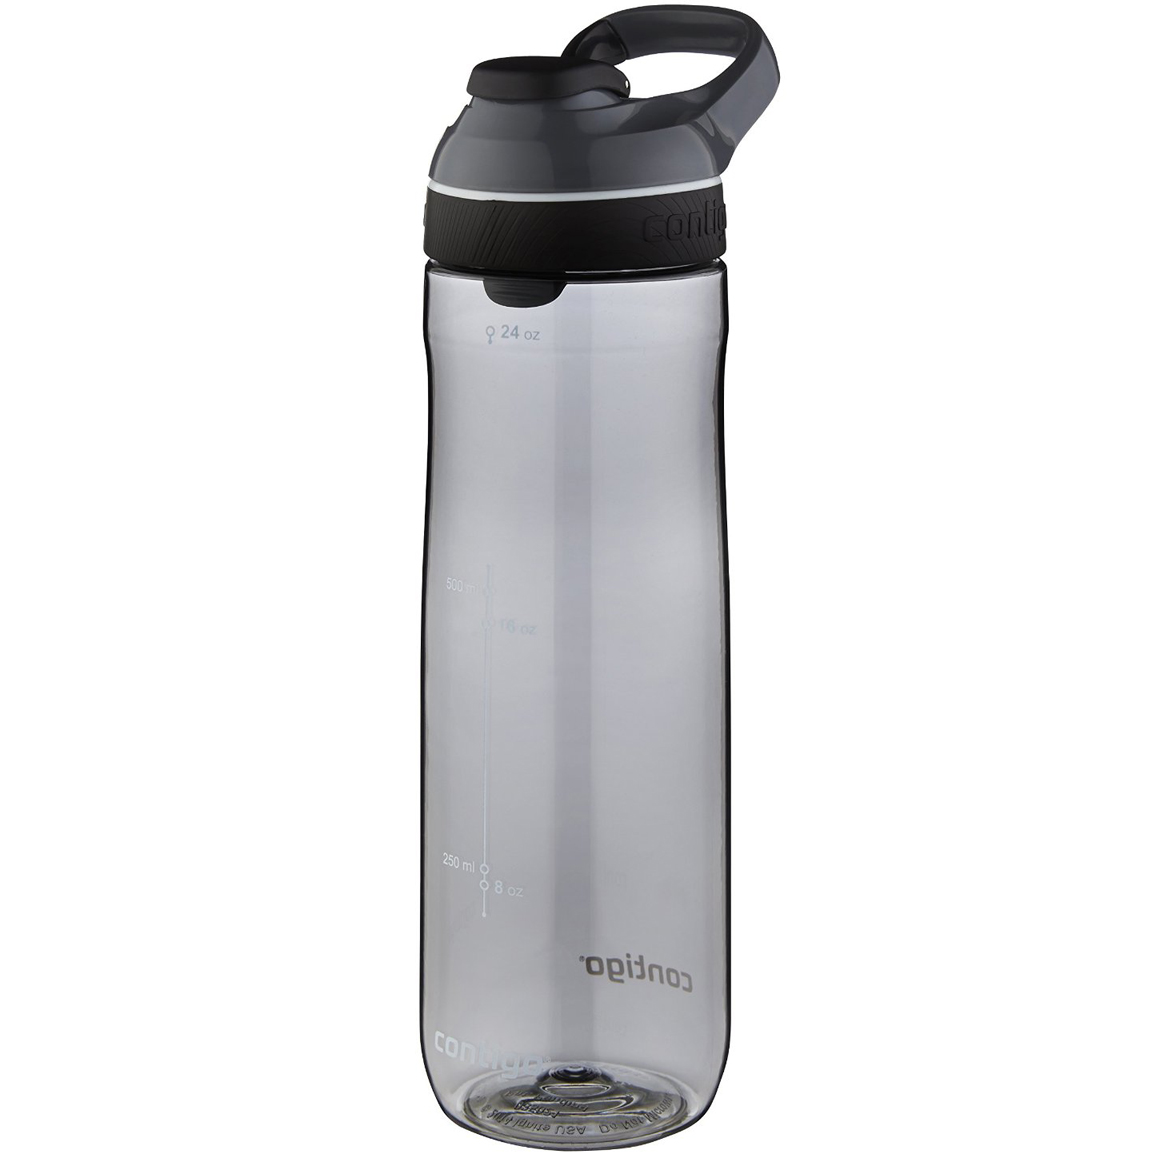 Contigo-24-oz-Cortland-Autoseal-Water-Bottle miniature 13